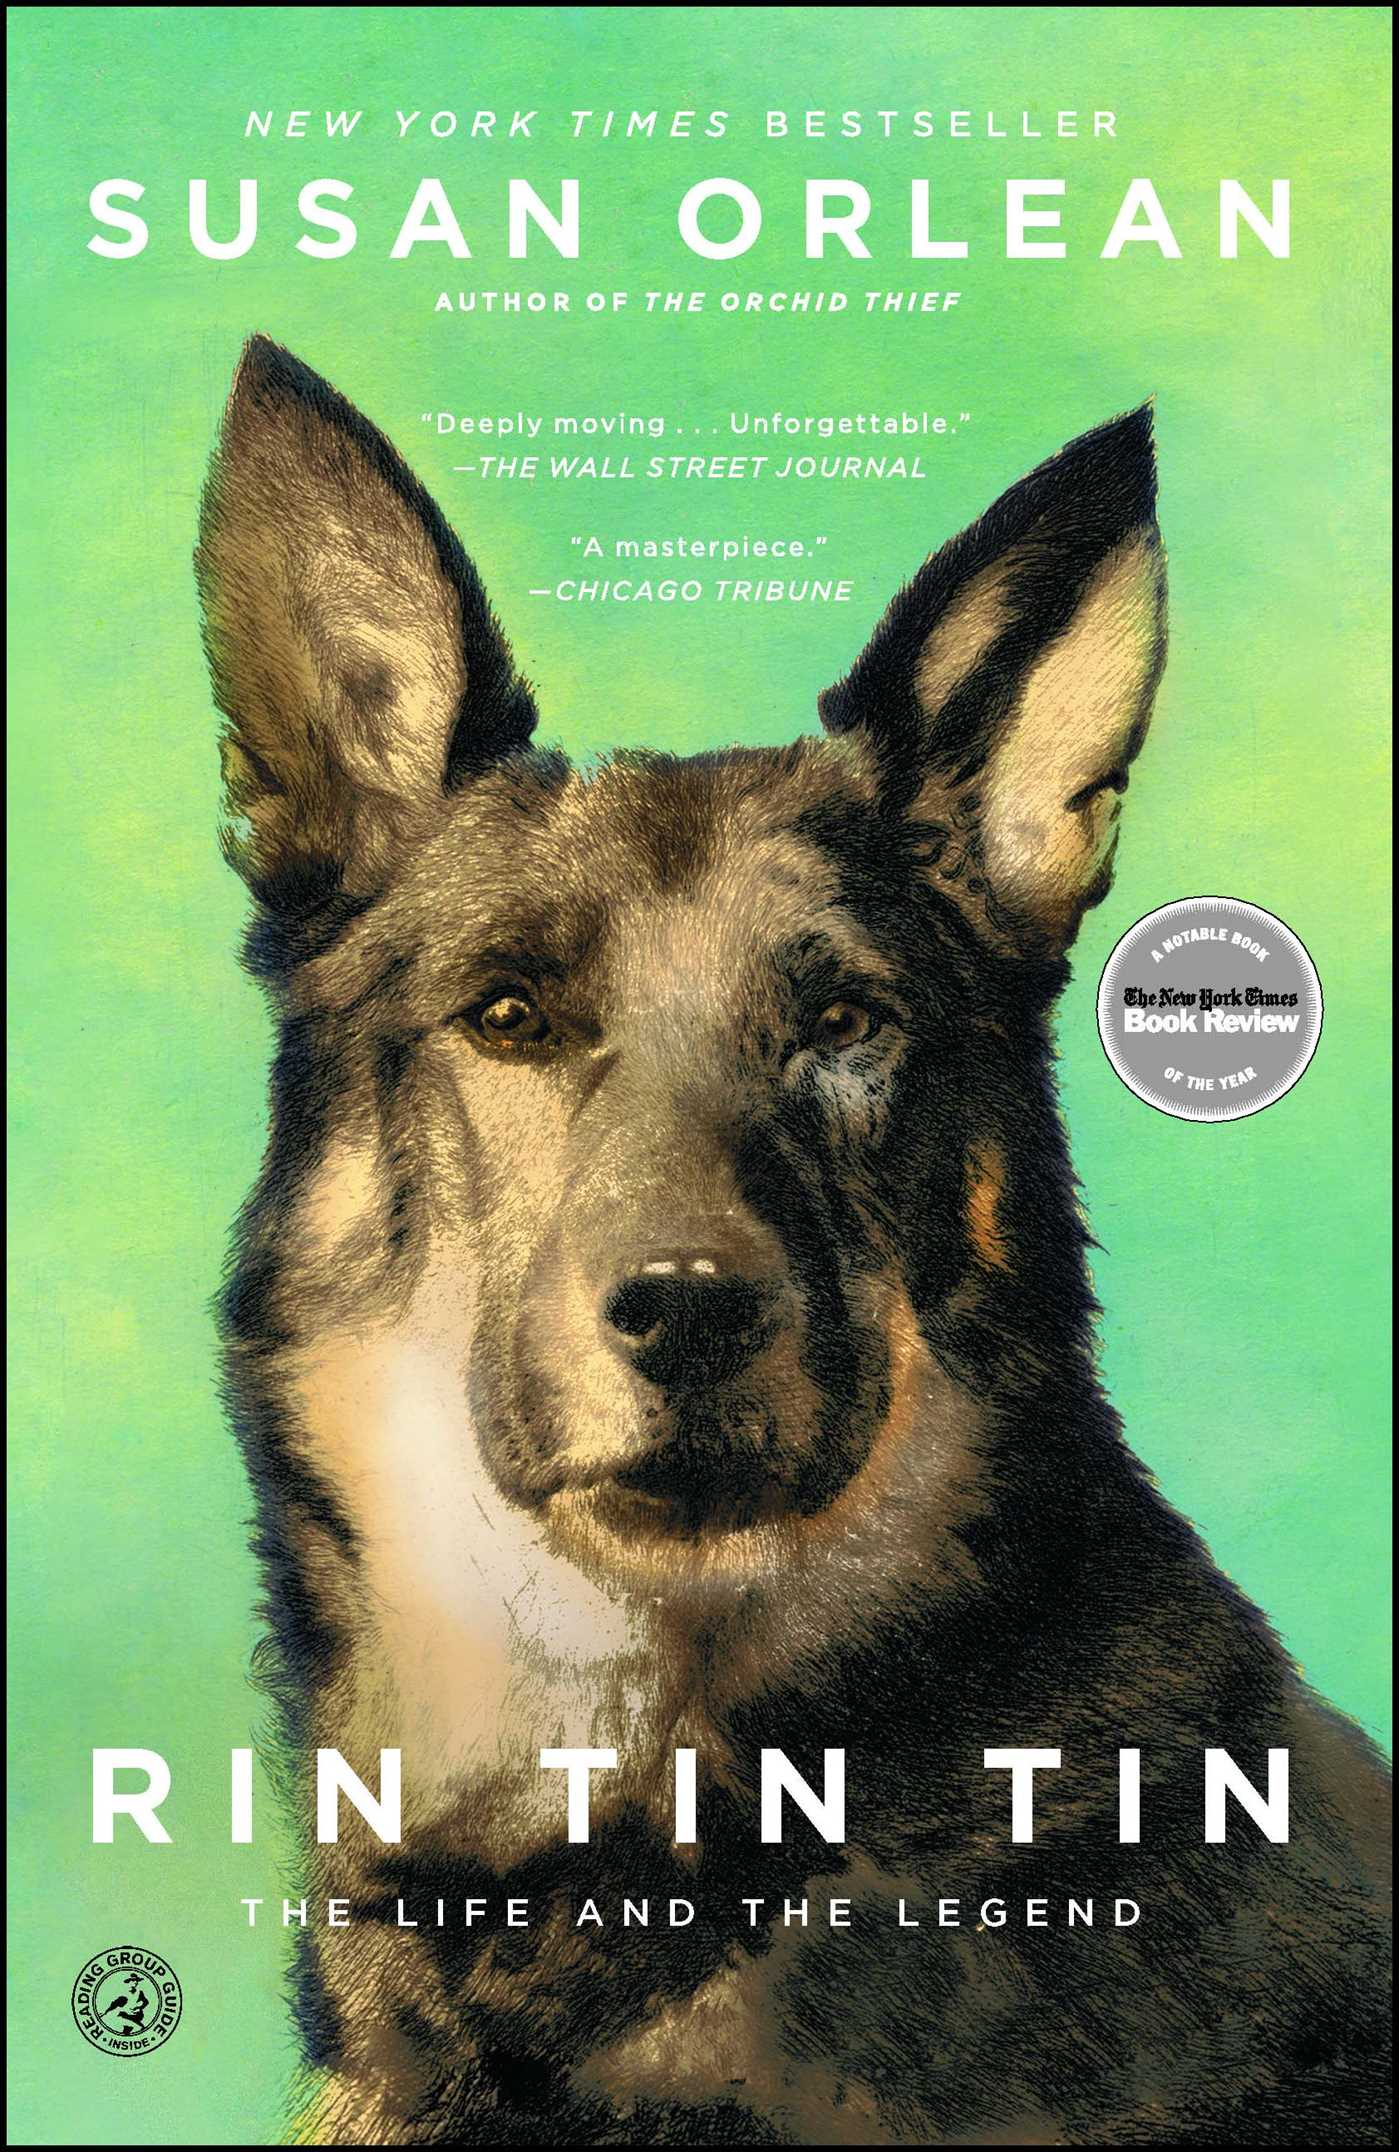 Rin tin tin 9781439190142 hr